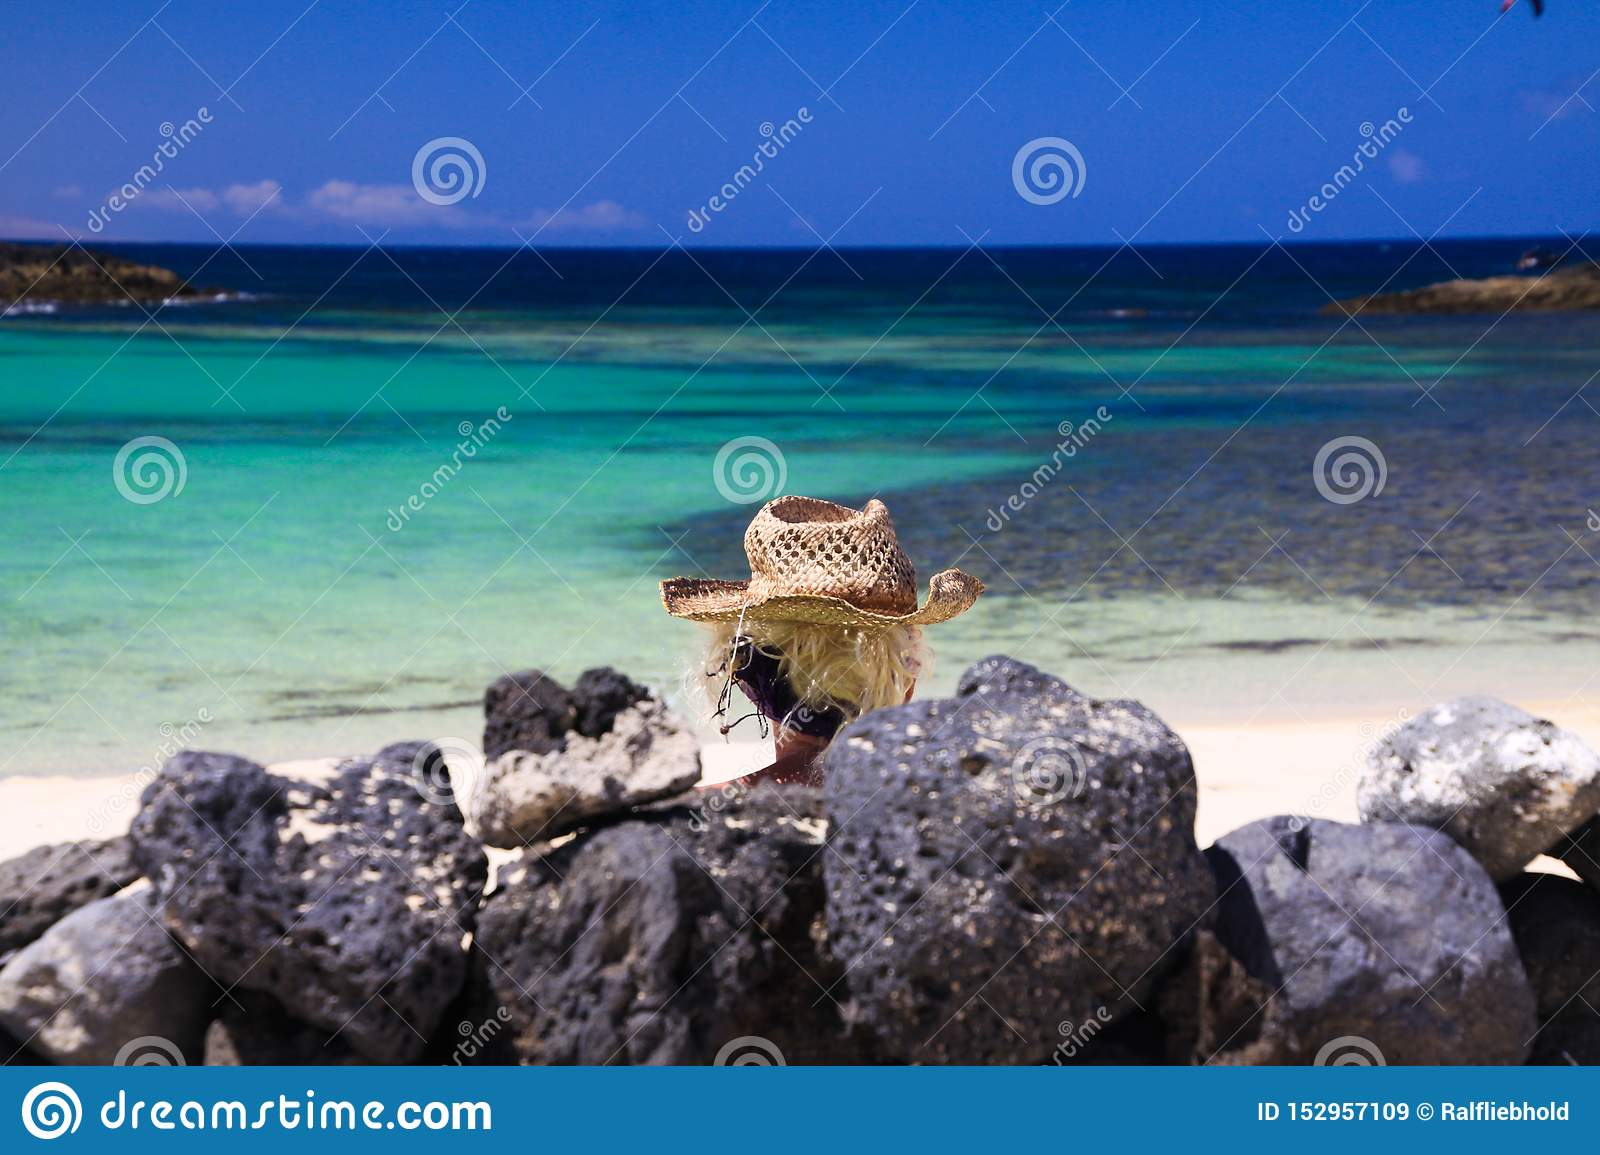 Head of blonde woman with straw hat sitting behind wall of piled natural rocks on beach with turquoise ocean - Fuerteventura, El